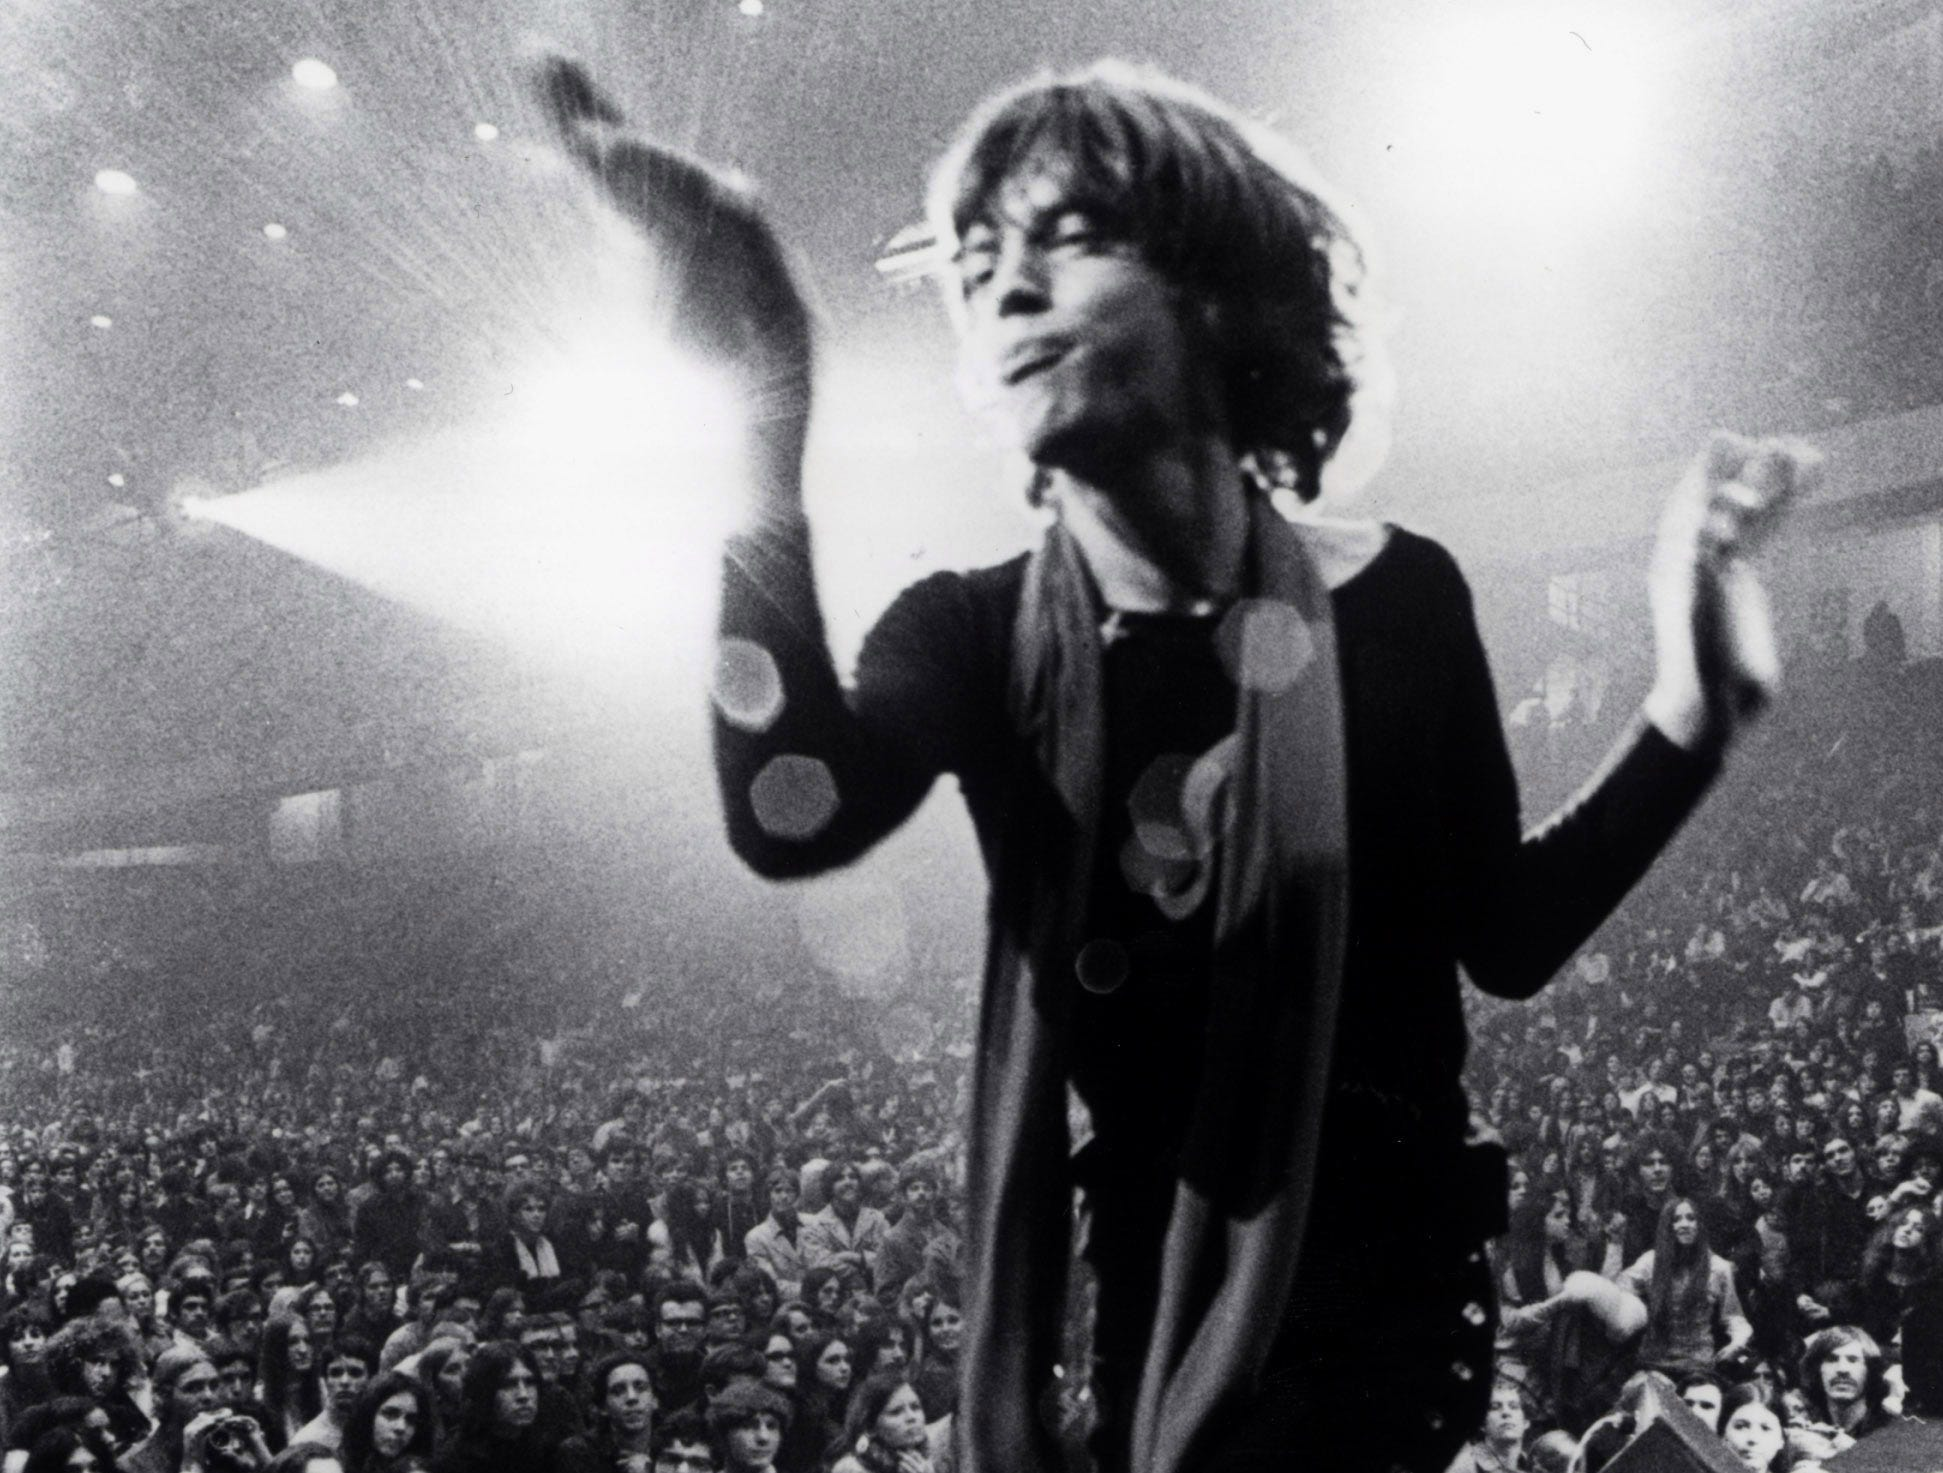 GIMME SHELTER – 1970.  Mick Jagger on stage at one of the last shows of The Rolling Stones' ¤1969 tour in a scene from the motion picture Gimme Shelter. --- DATE TAKEN: rec'd 06/04  No Byline   Criterion        HO      - handout   ORG XMIT: ZX21475